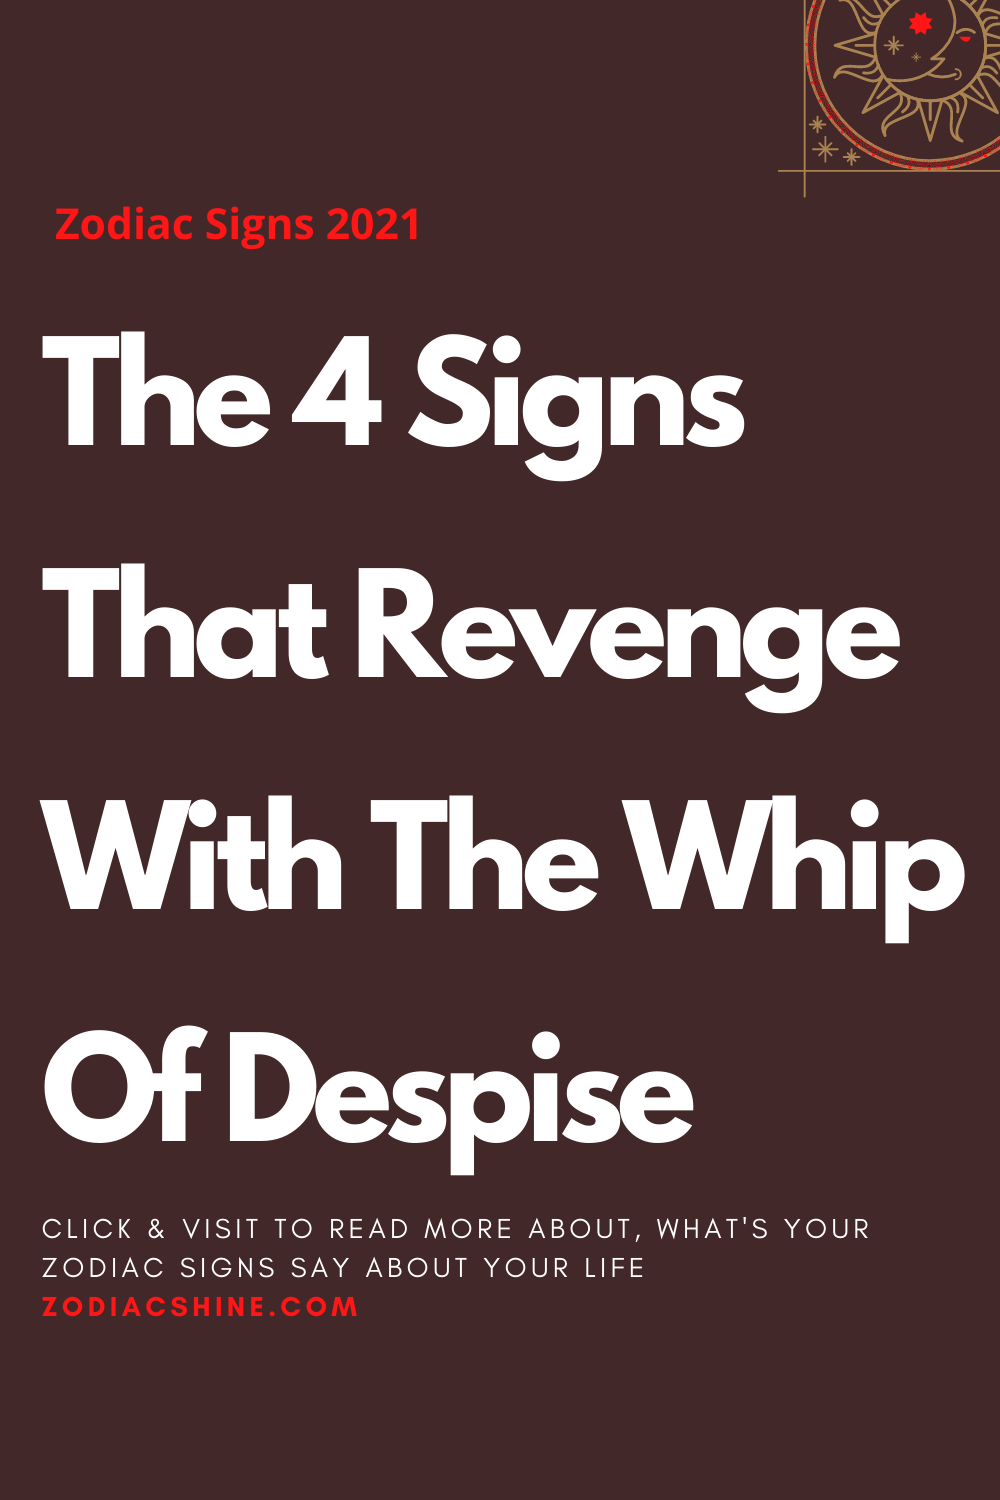 The 4 Signs That Revenge With The Whip Of Despise